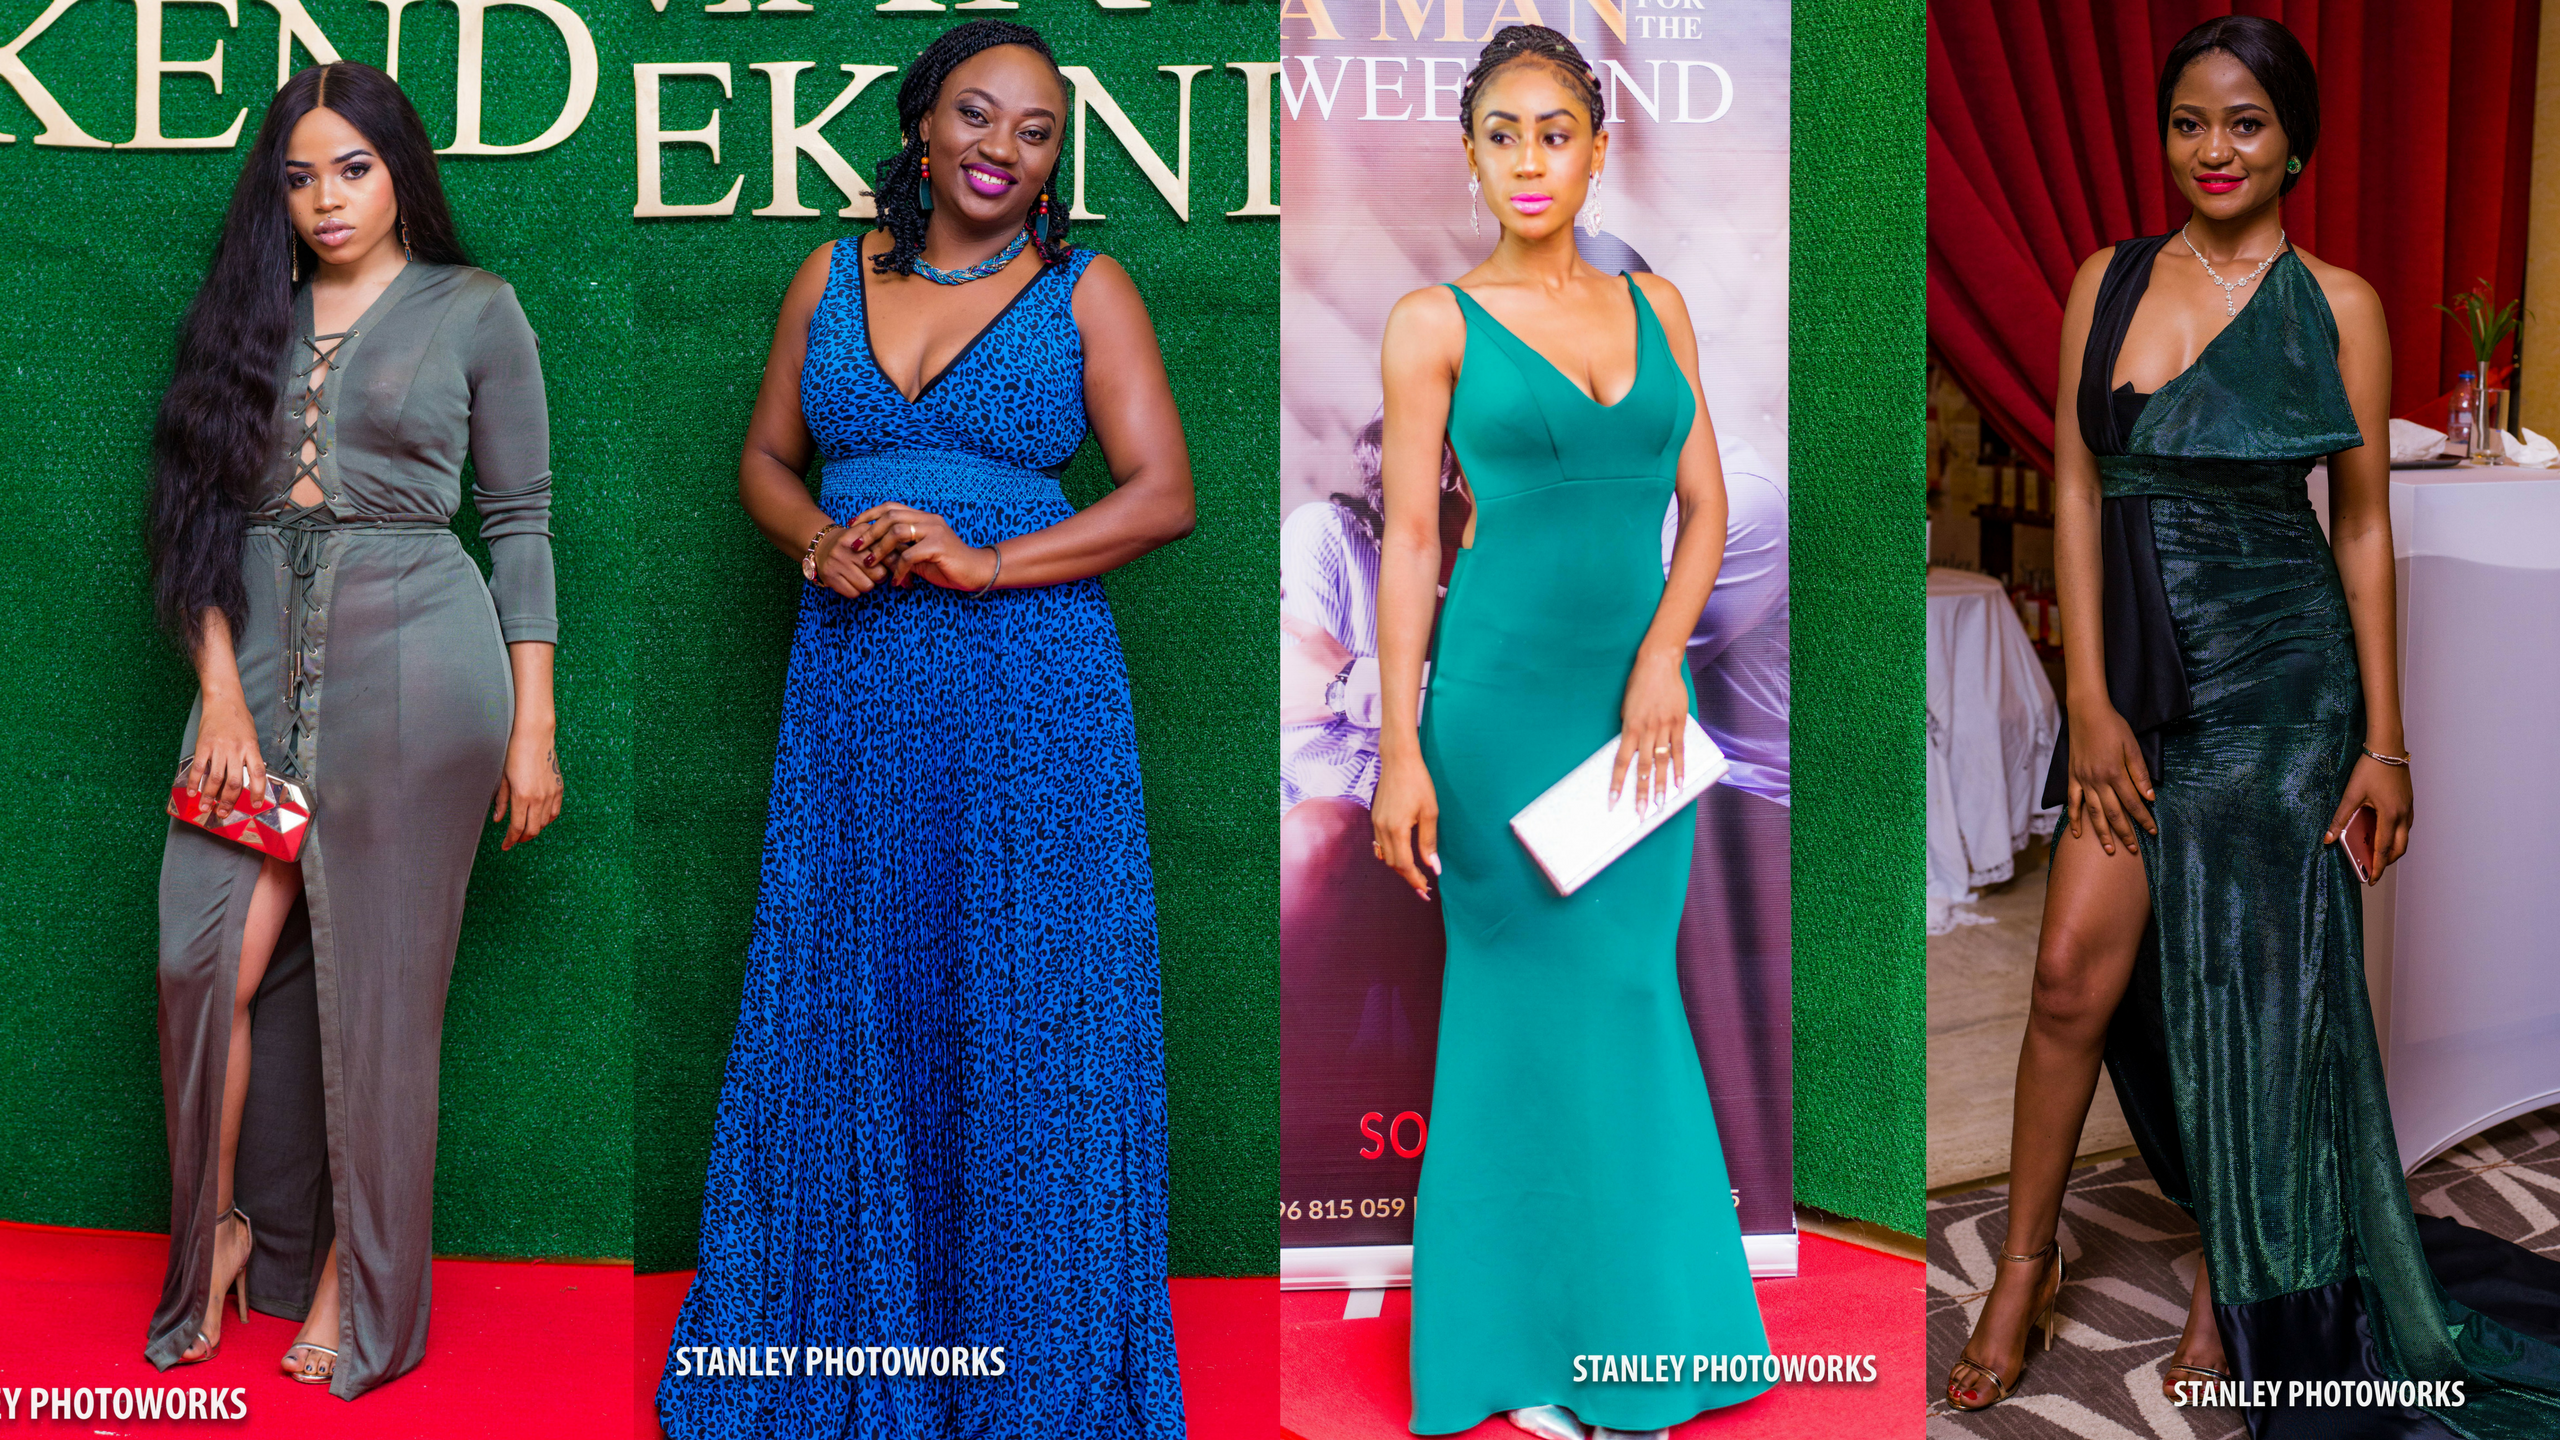 BEST LOOKS: BLANCHE BAILLY | POCHI TAMBA & MANY MORE